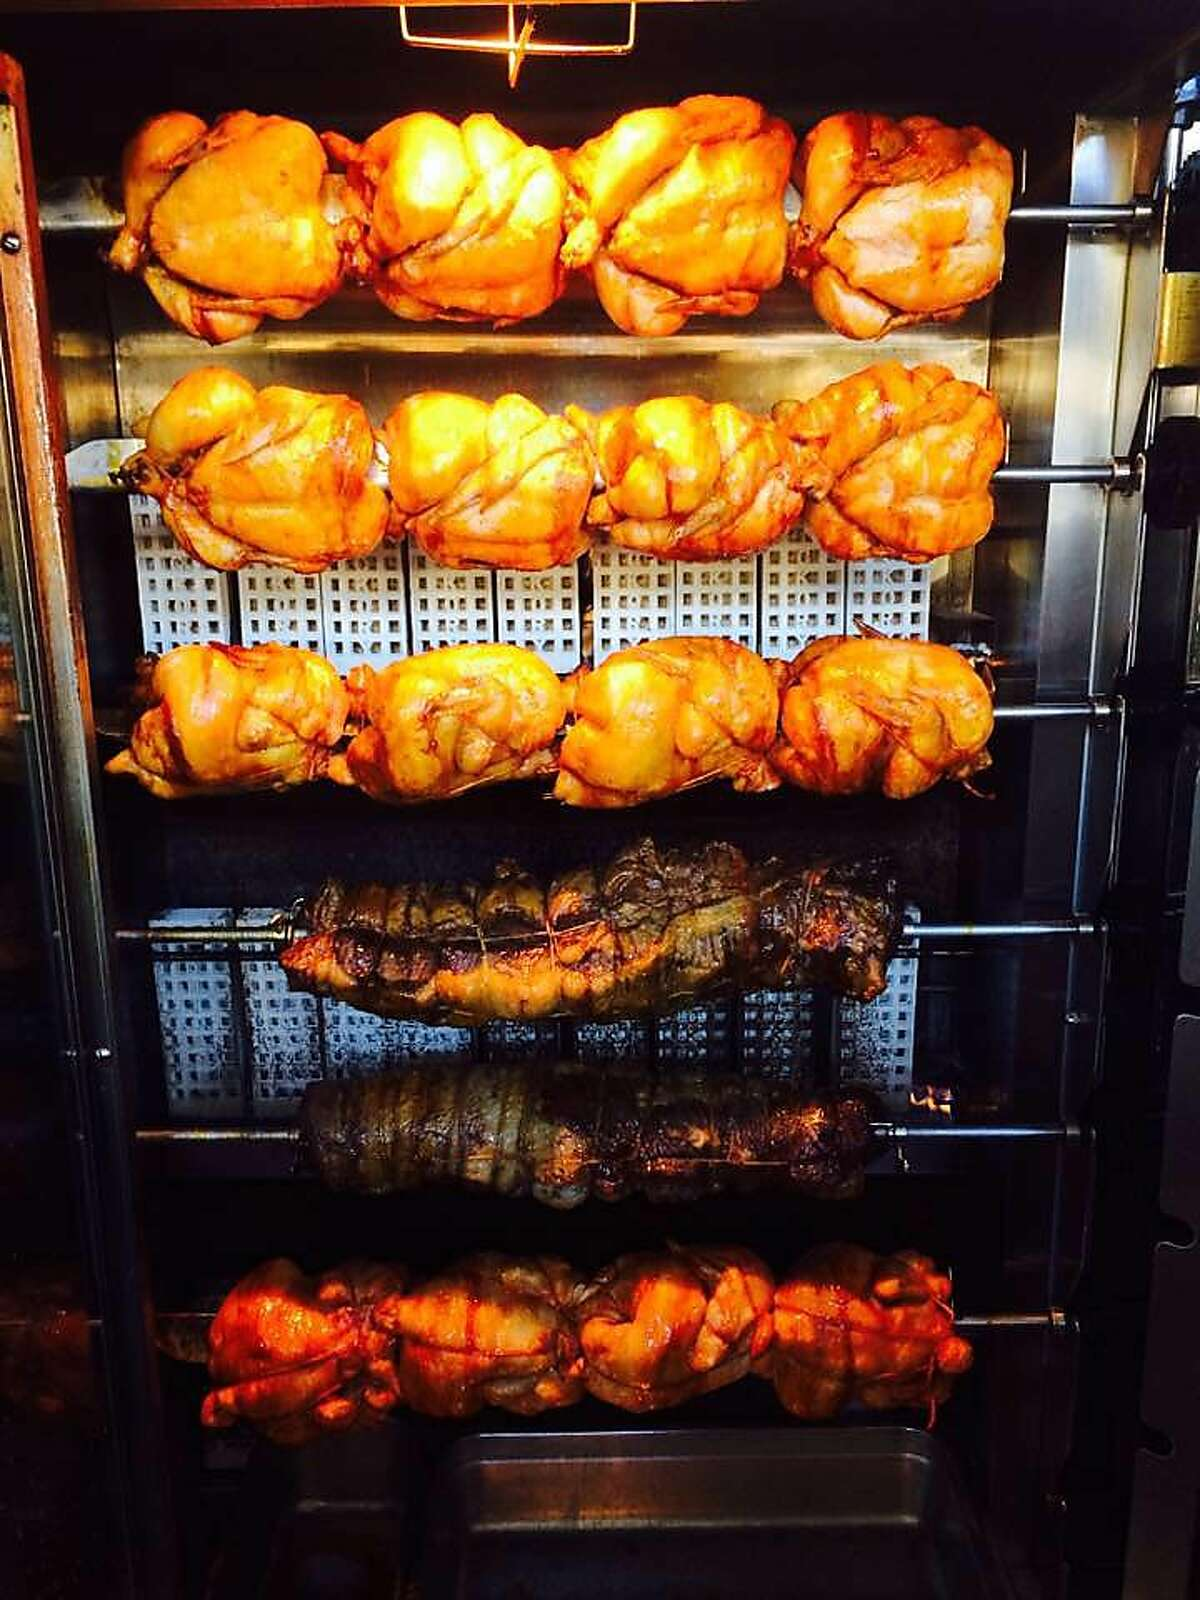 Hoffmann's Grill and Rotisserie